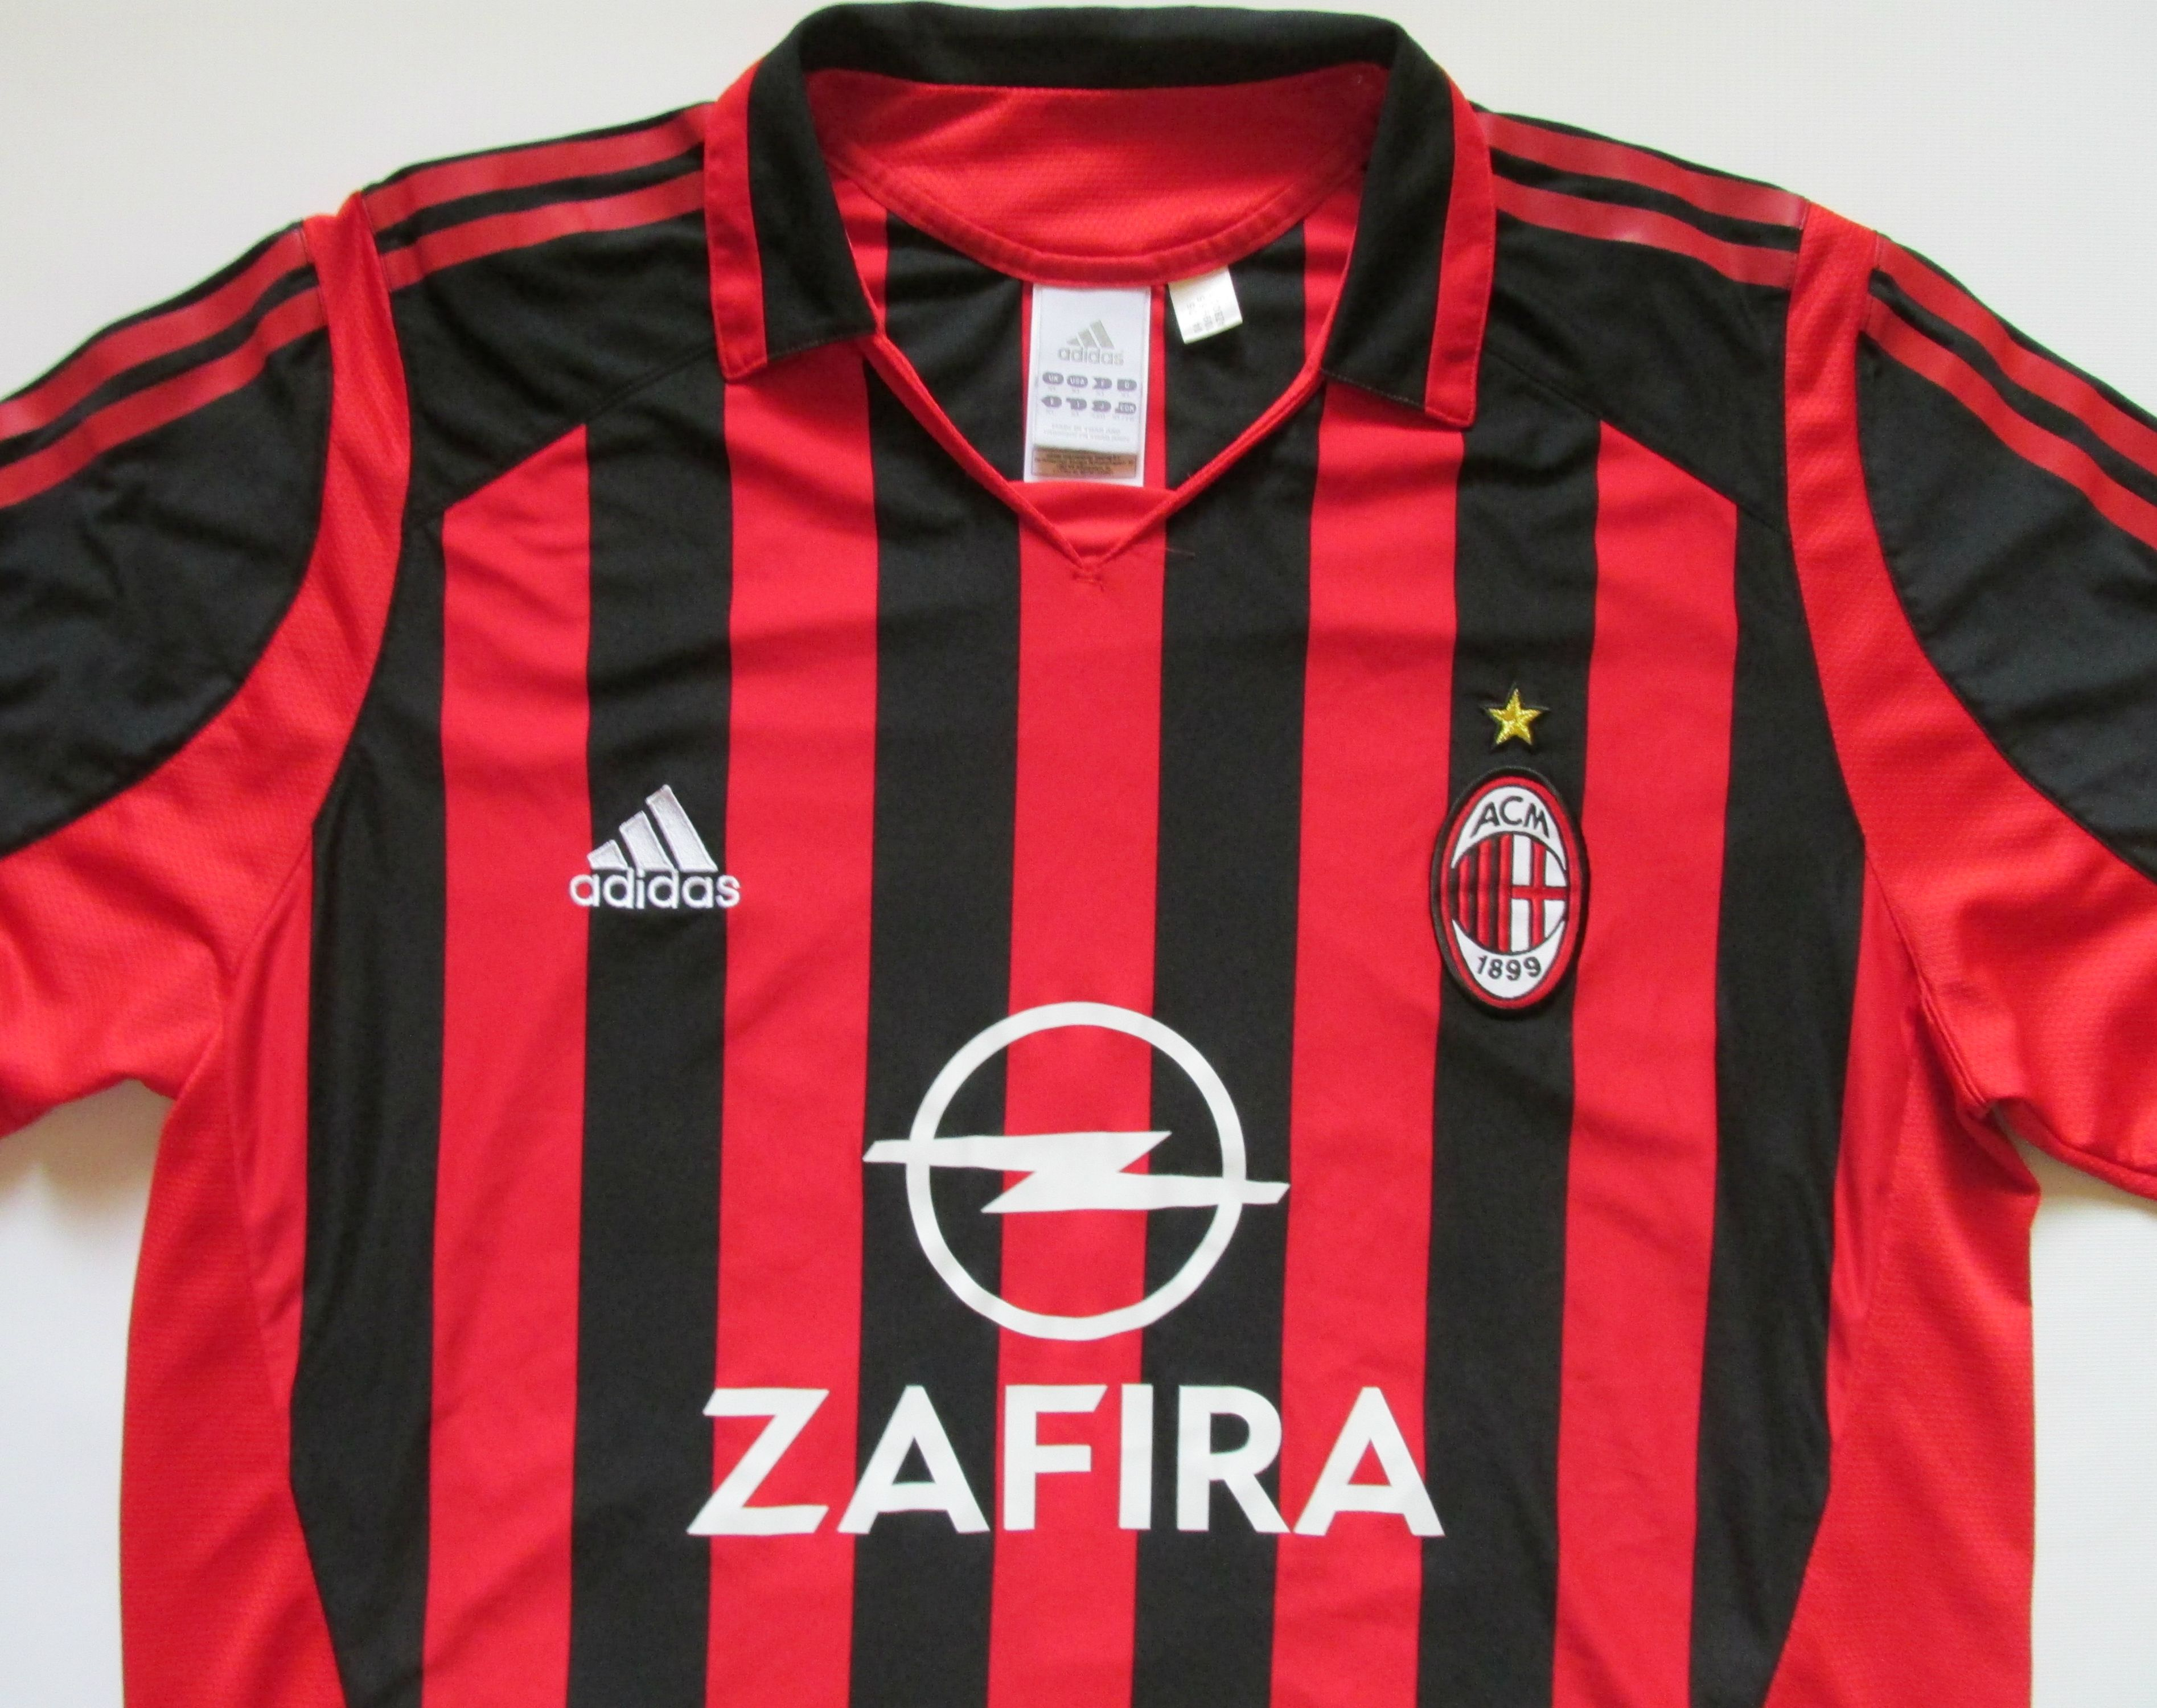 AC Milan 2005 2006 home football shirt by Adidas calcio maglia ACM Italy  Italia SerieA b1df914fa